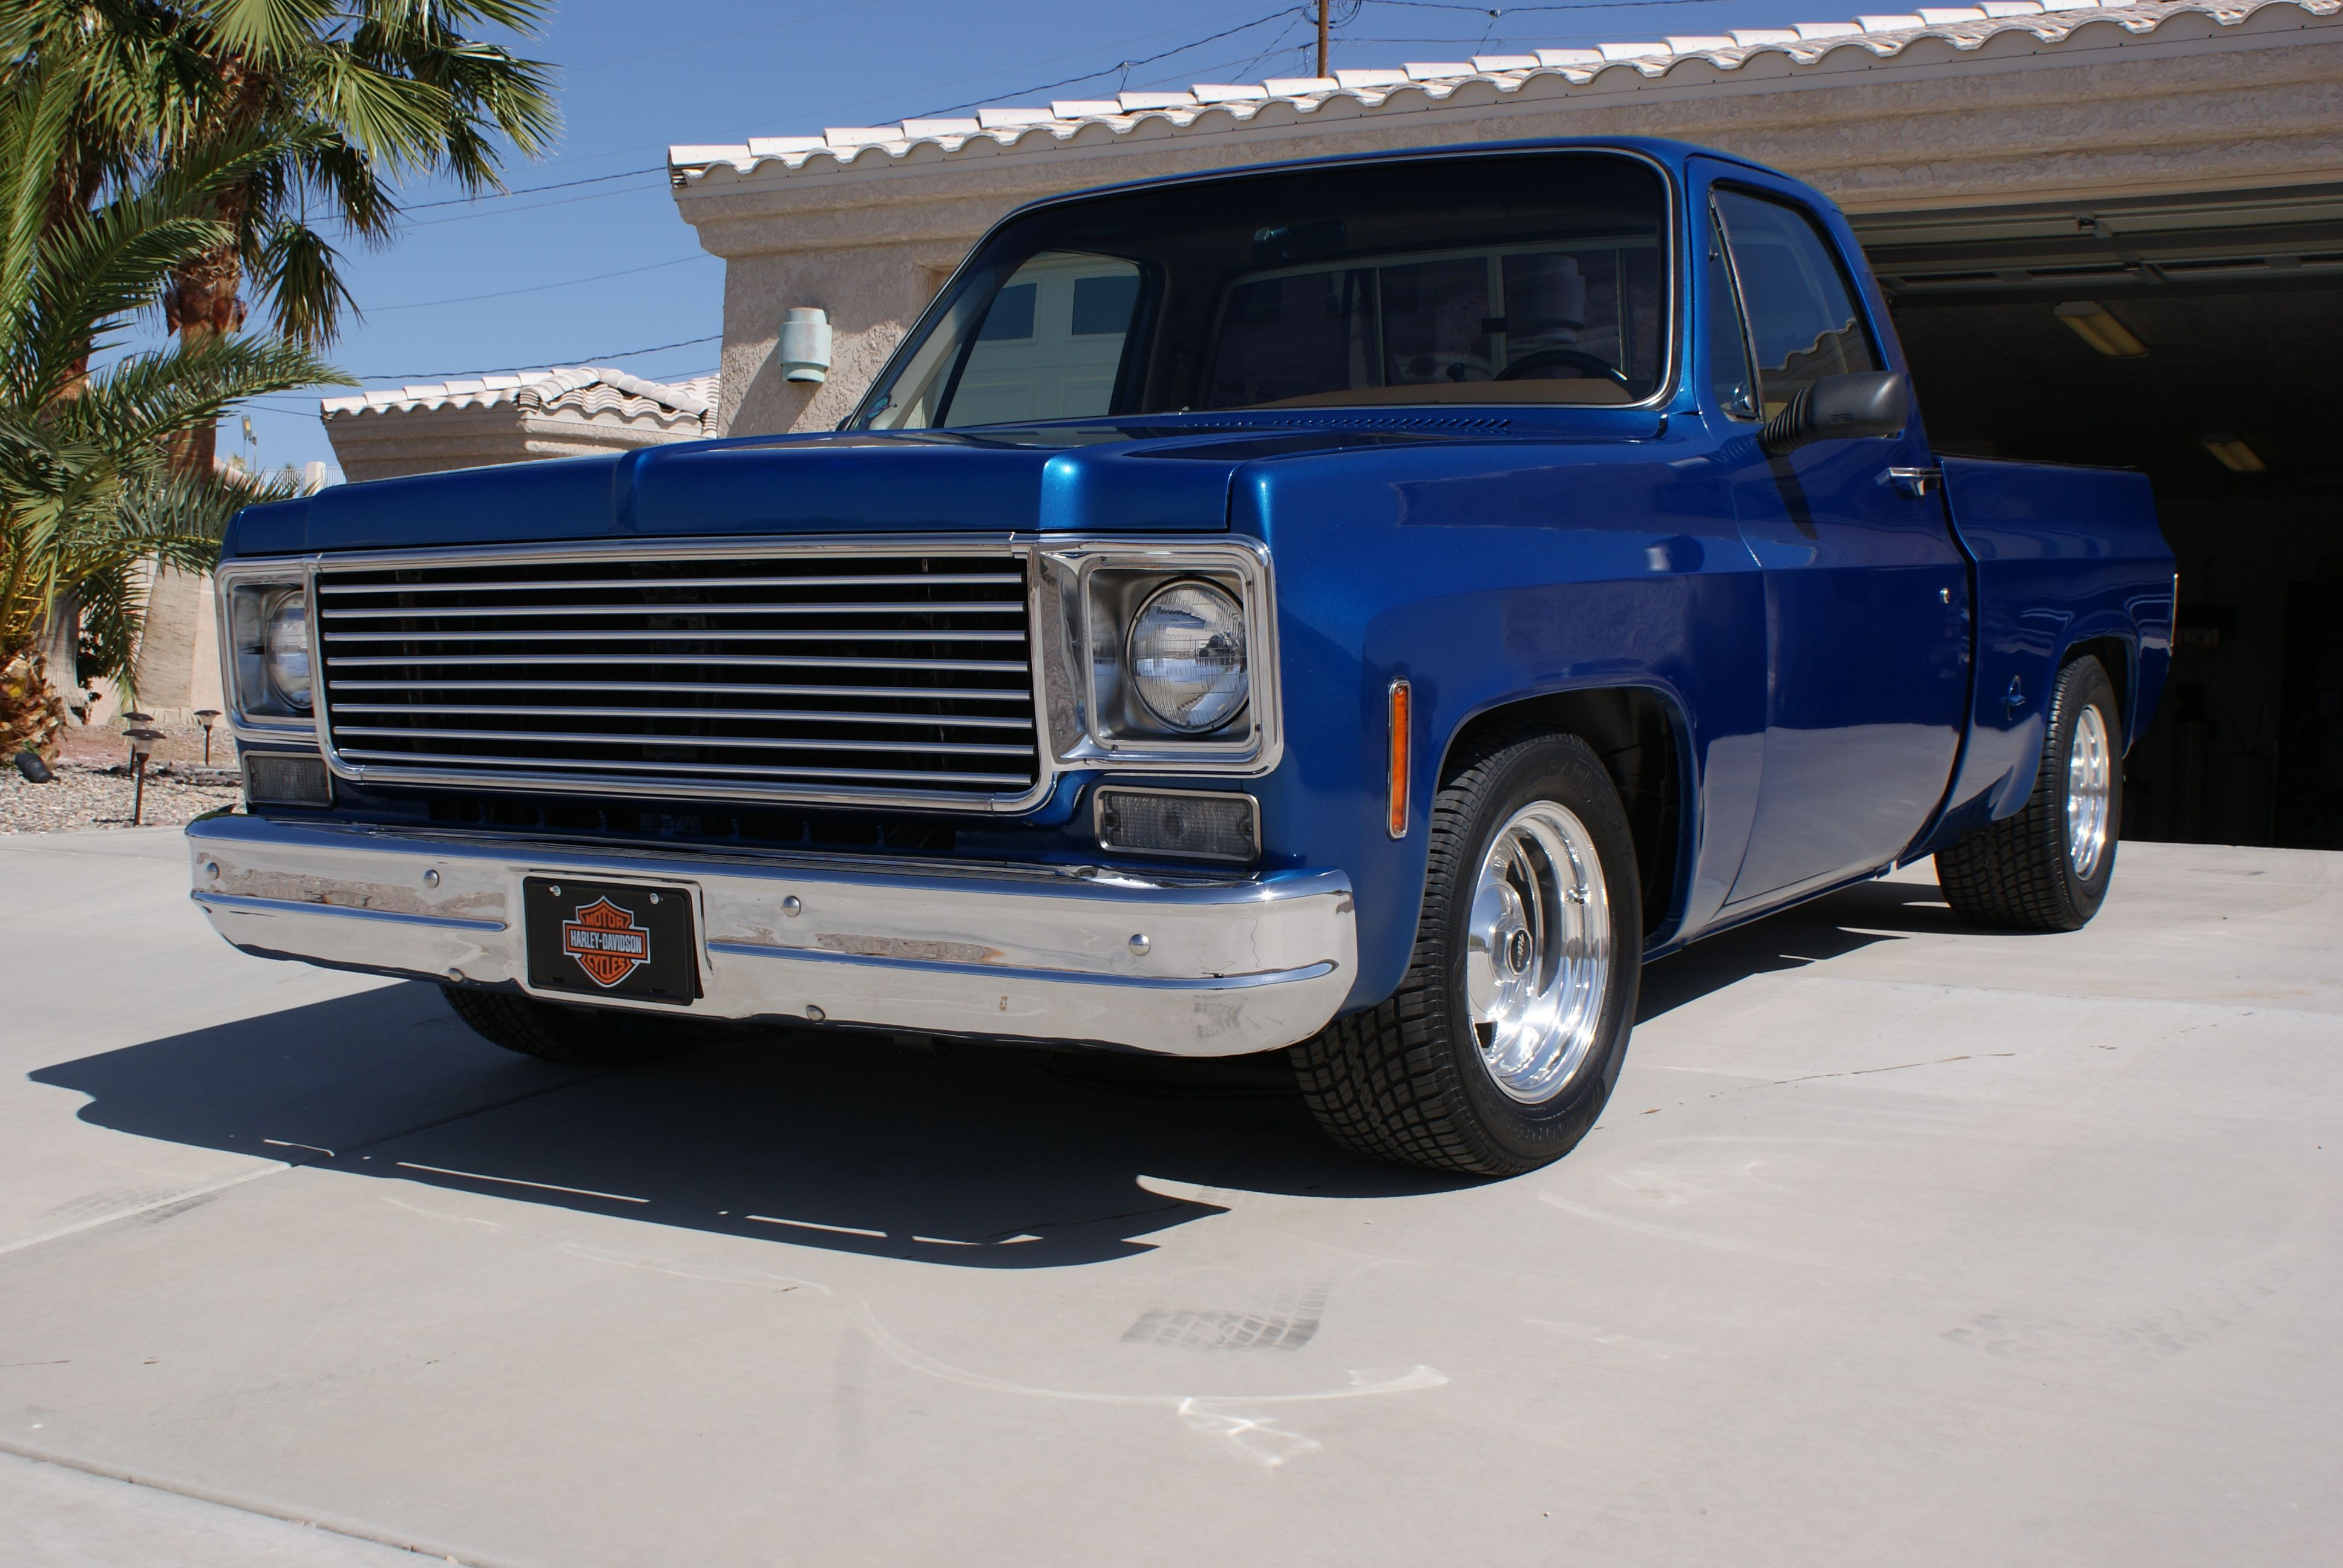 hight resolution of 1978 chevy c10 autotrader classics 1978 chevrolet c10 truck blue 8 cylinder